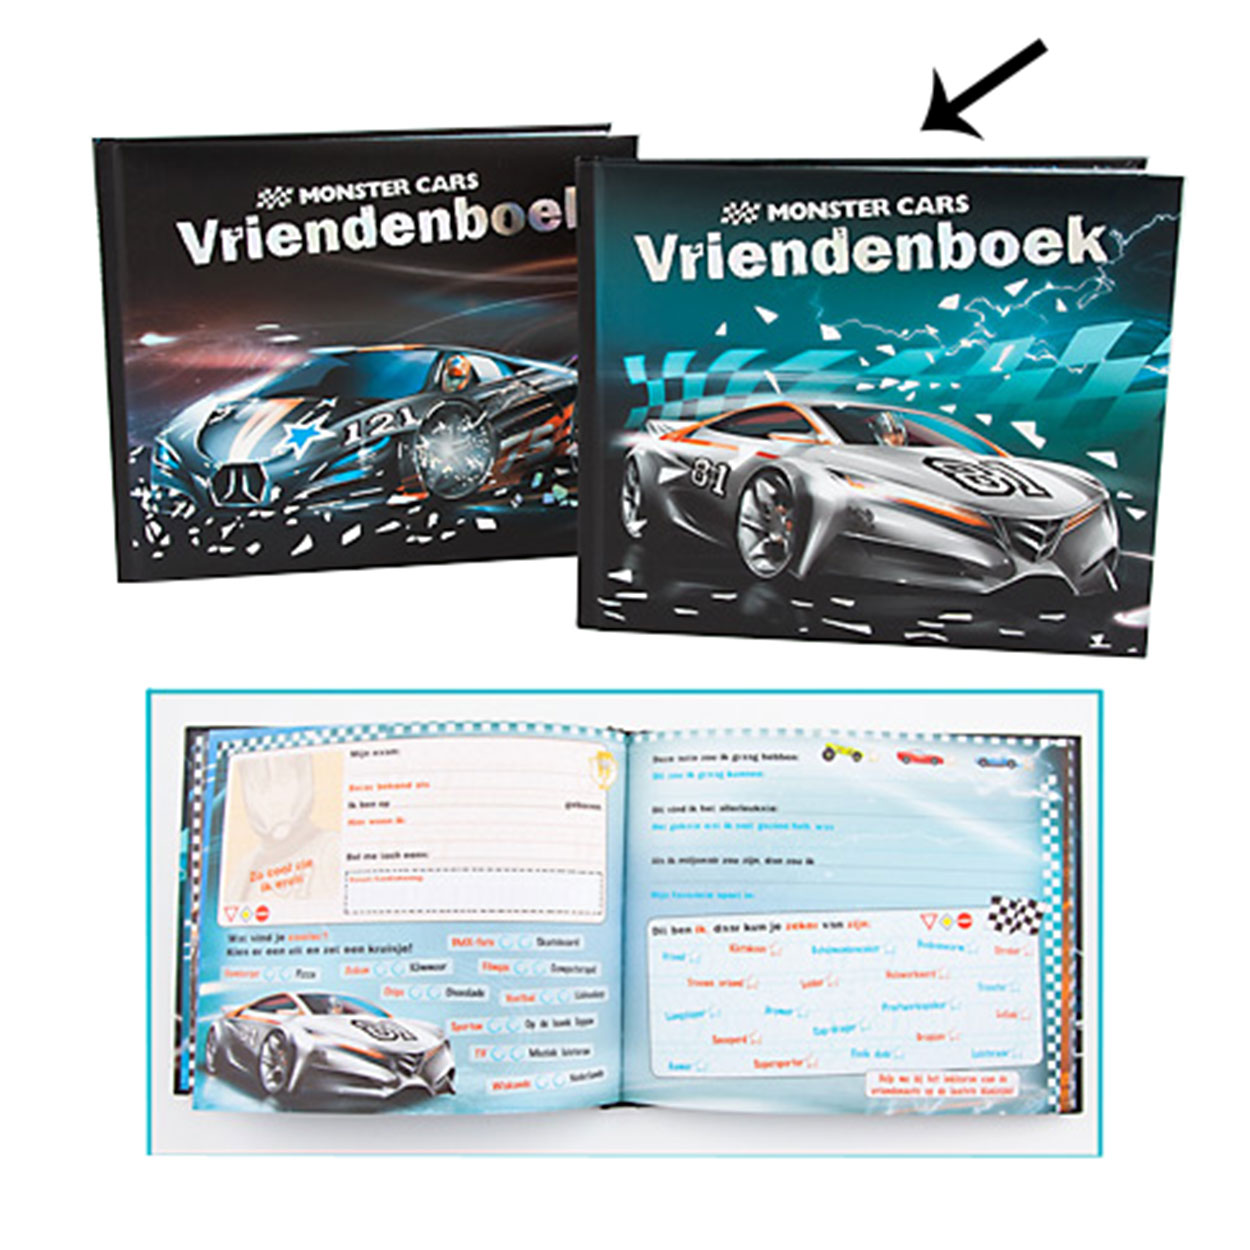 Monster Cars Vriendenboek - '81'